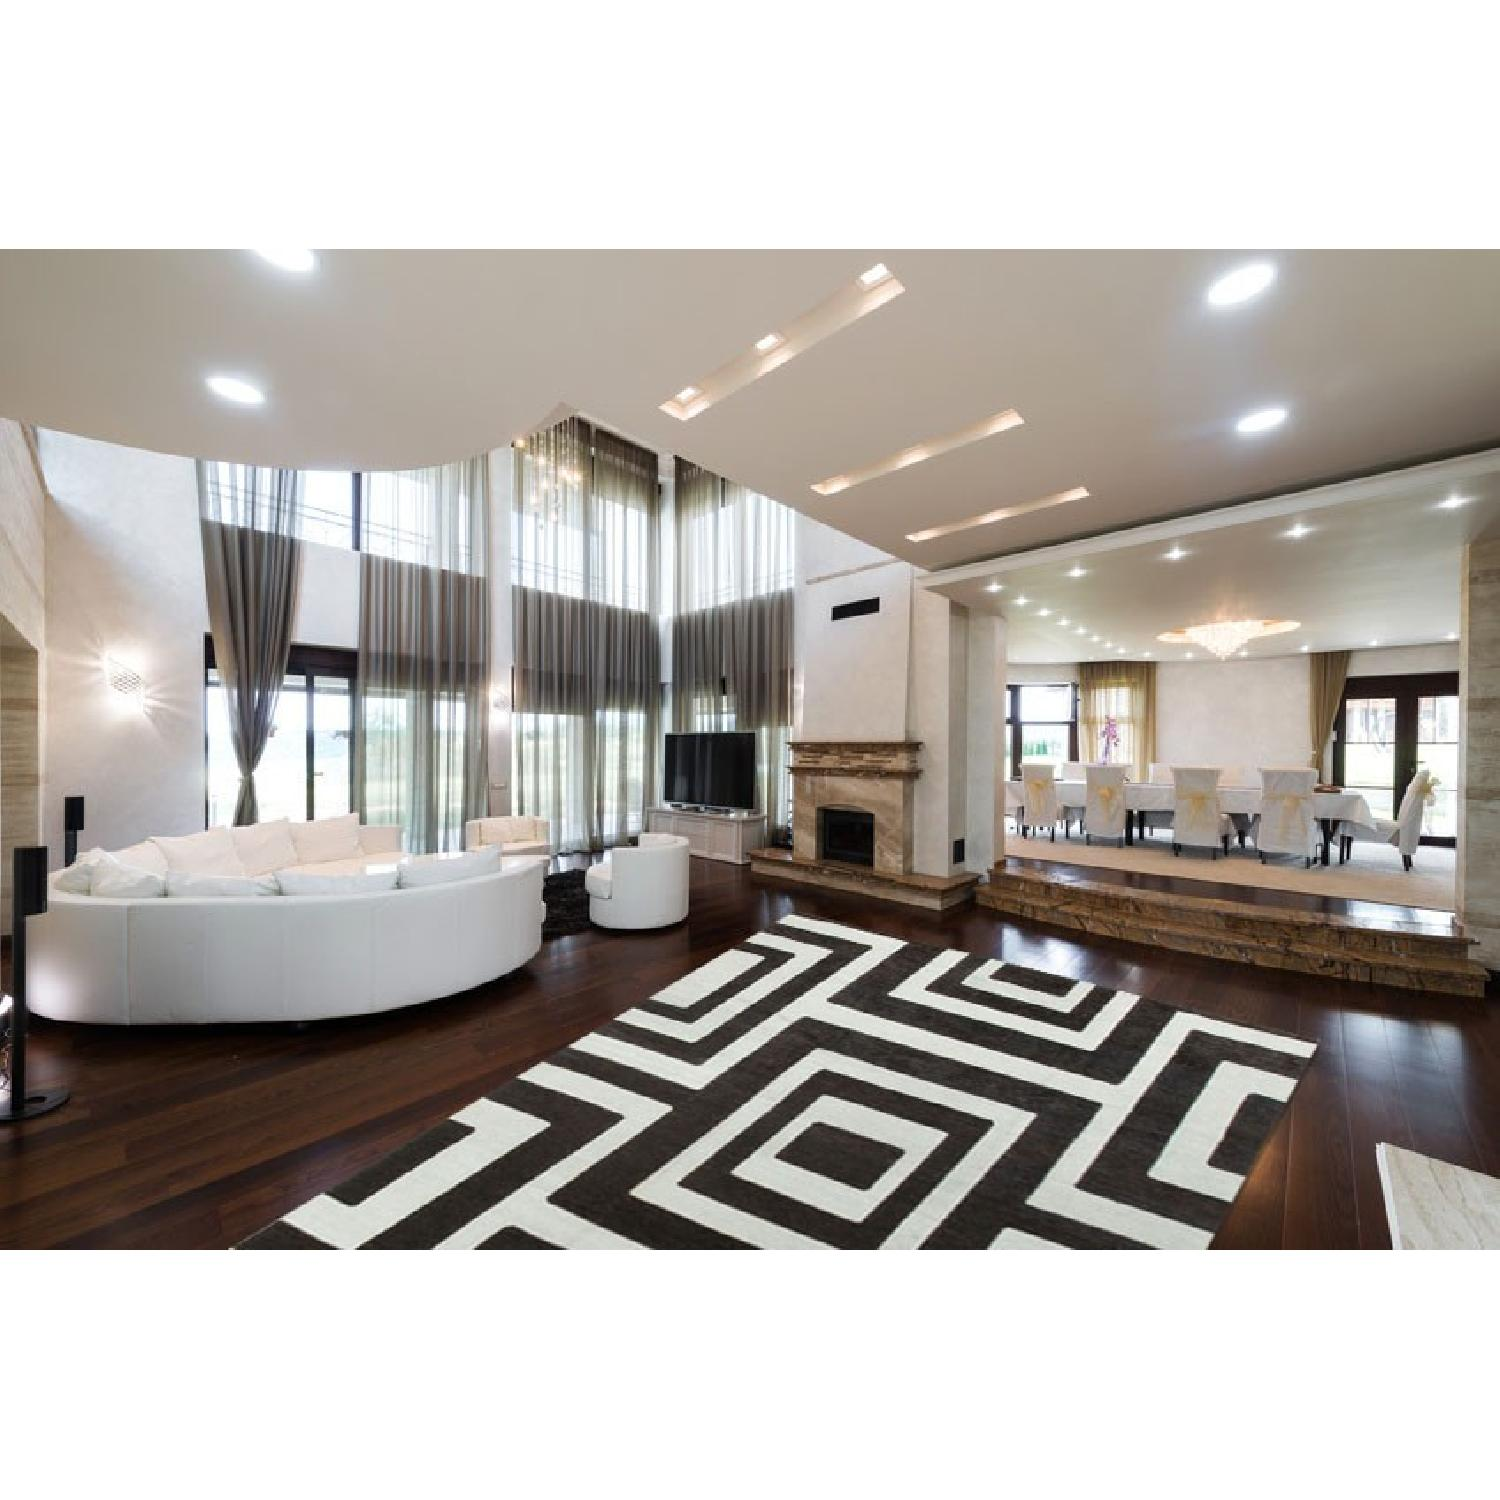 Modern Contemporary Hand Knotted Wool Rug in Black/White - image-1